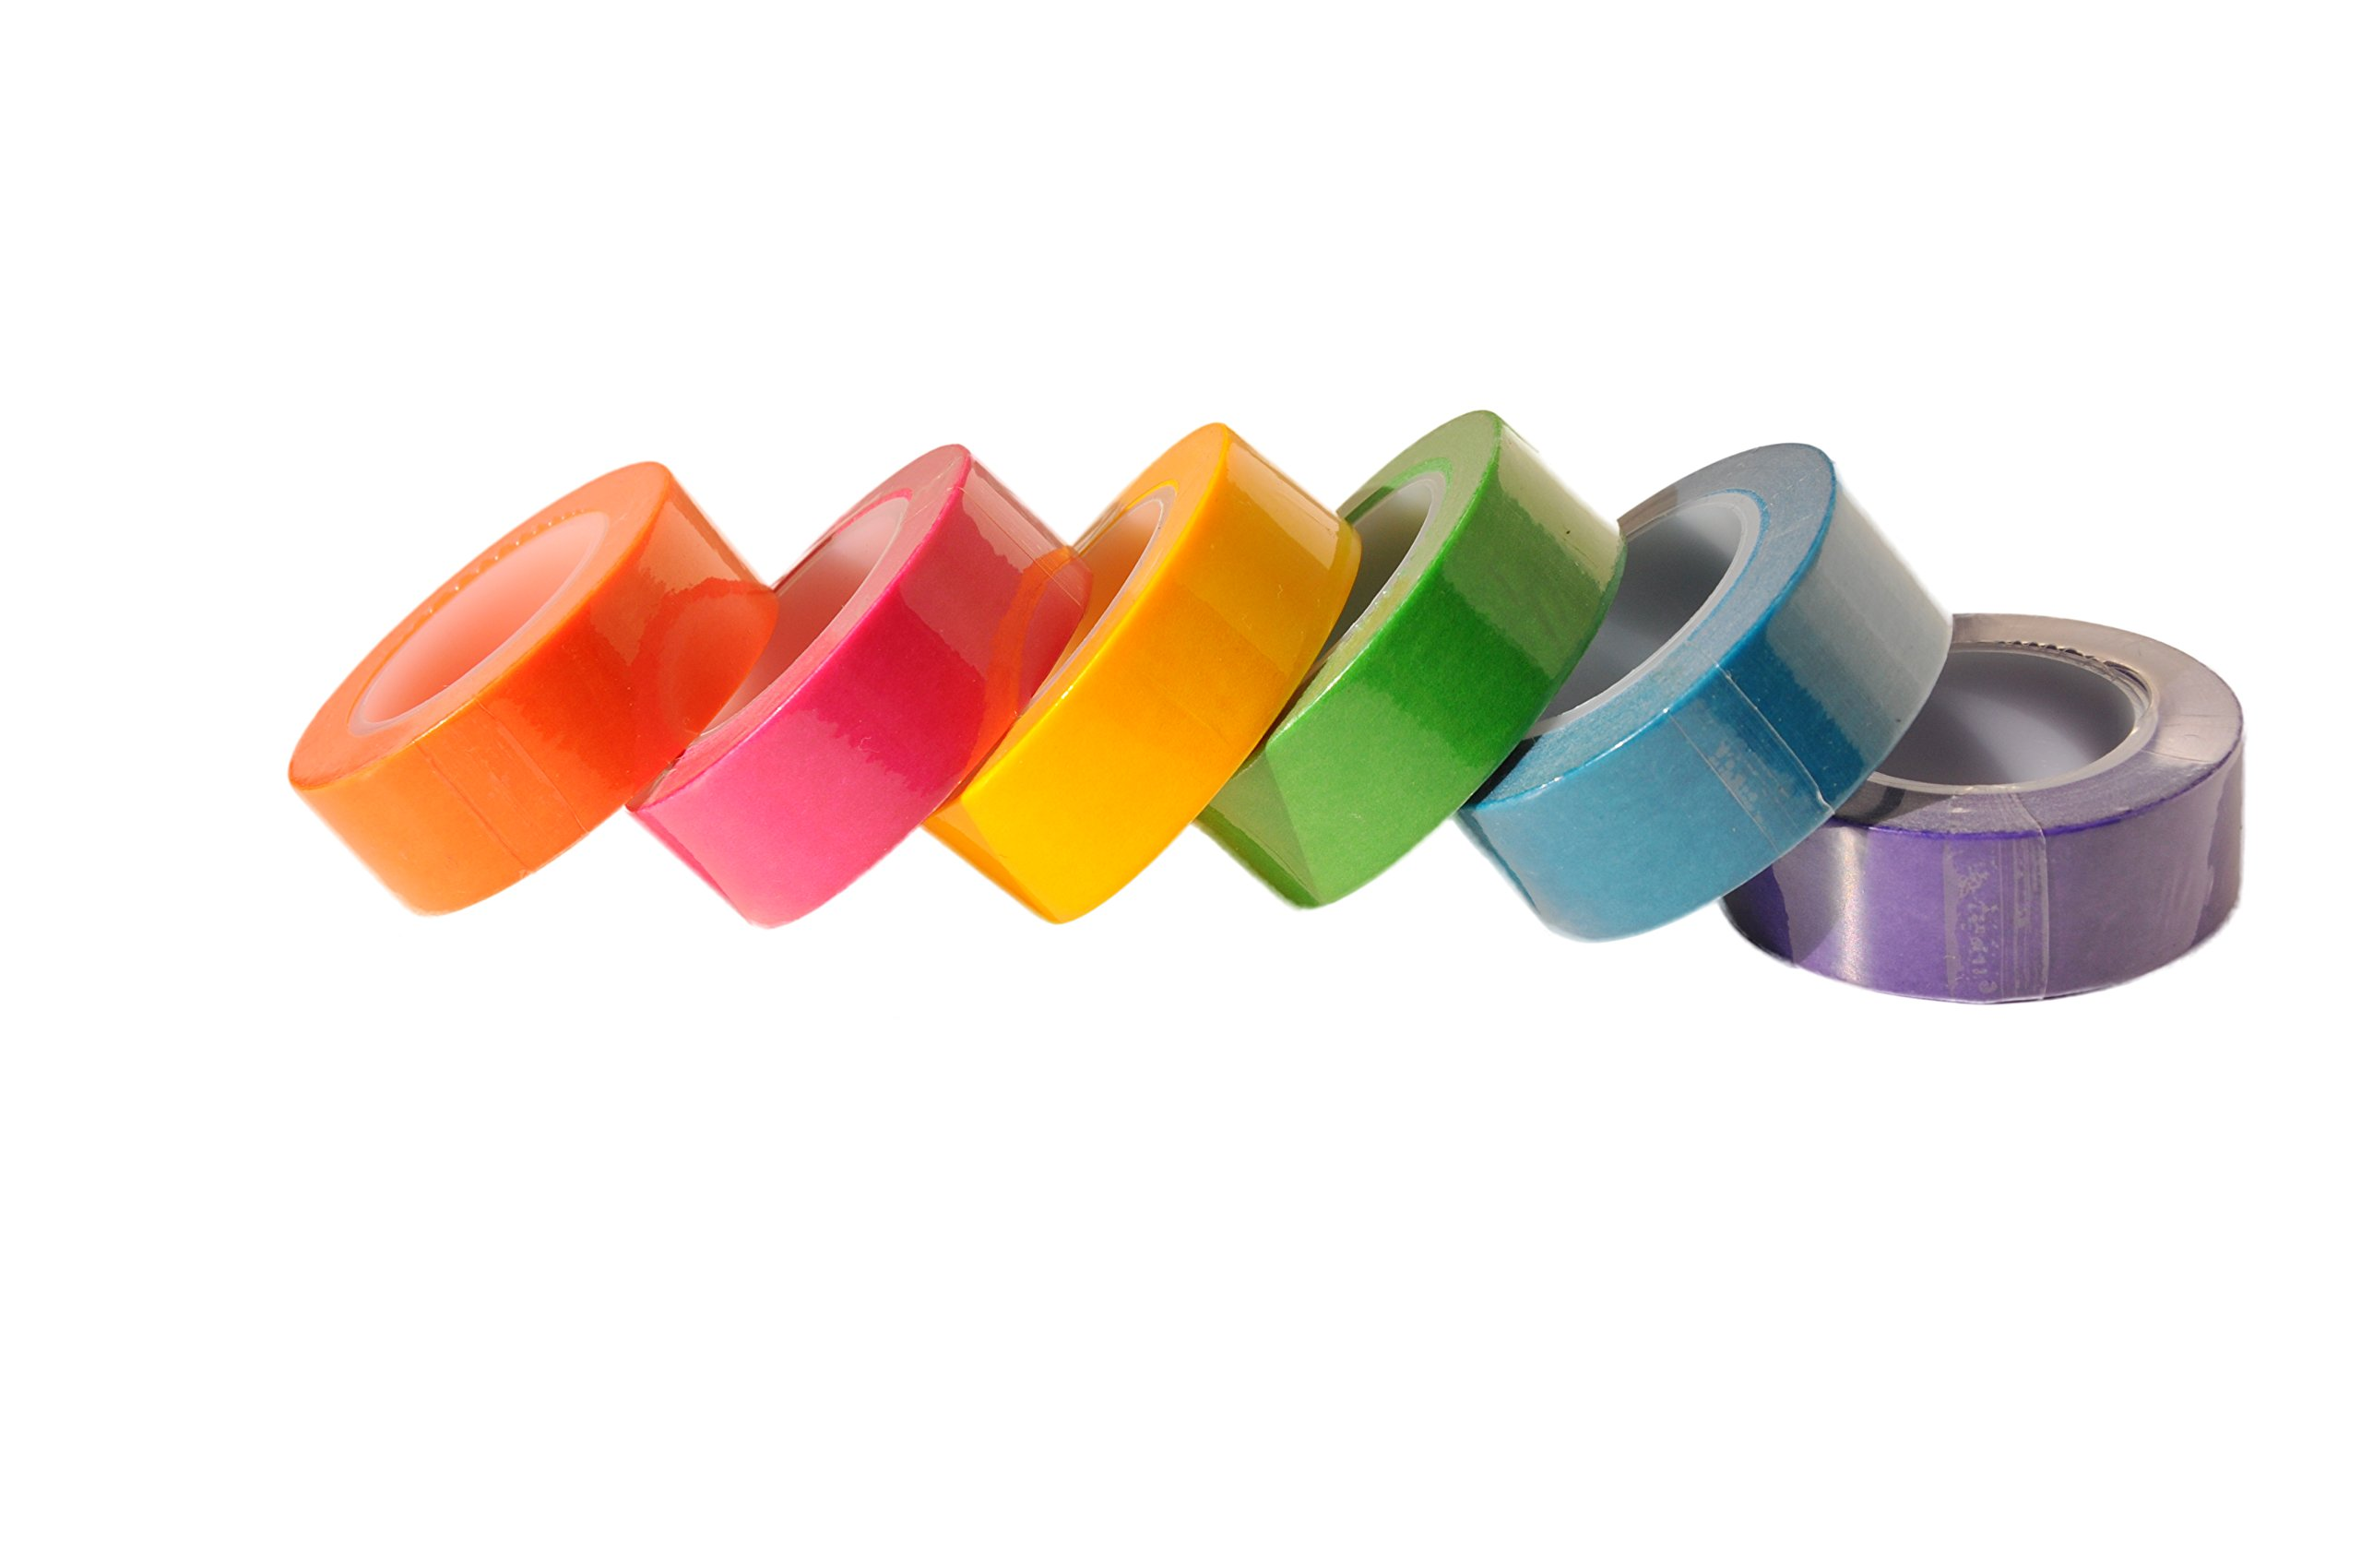 Homestic Removeable Highlighter Tape 0.6-inch x 393-inch, Fluorescent Colors (6 Colors with Dispenser) by Homestic (Image #4)